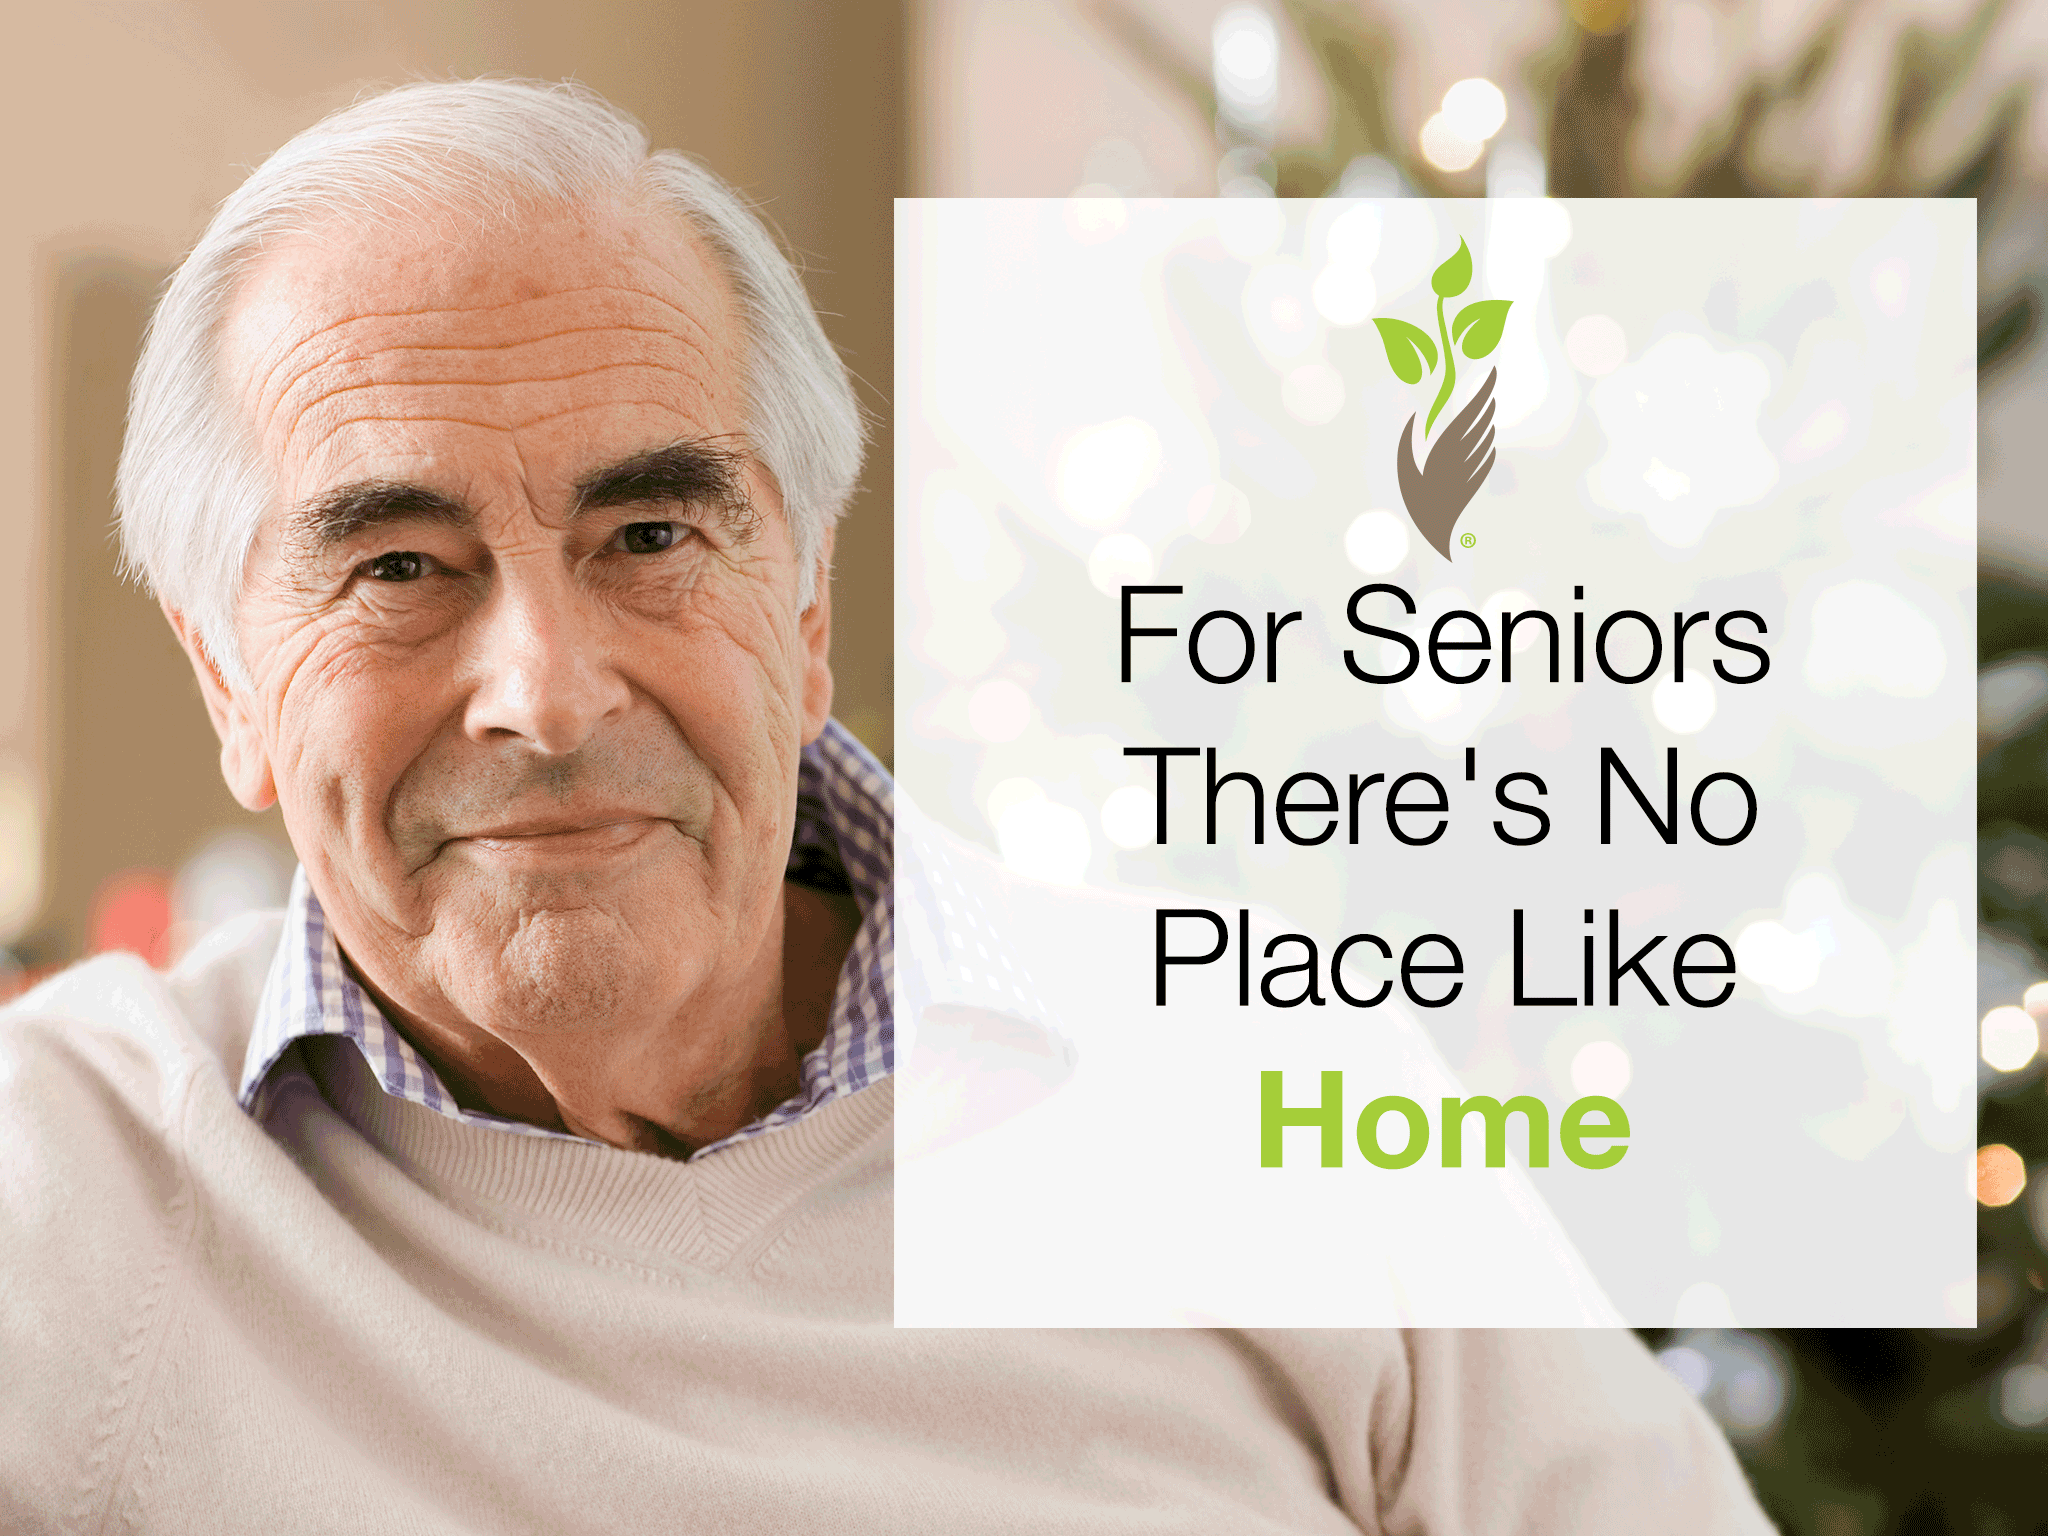 For Seniors There's No Place Like Home